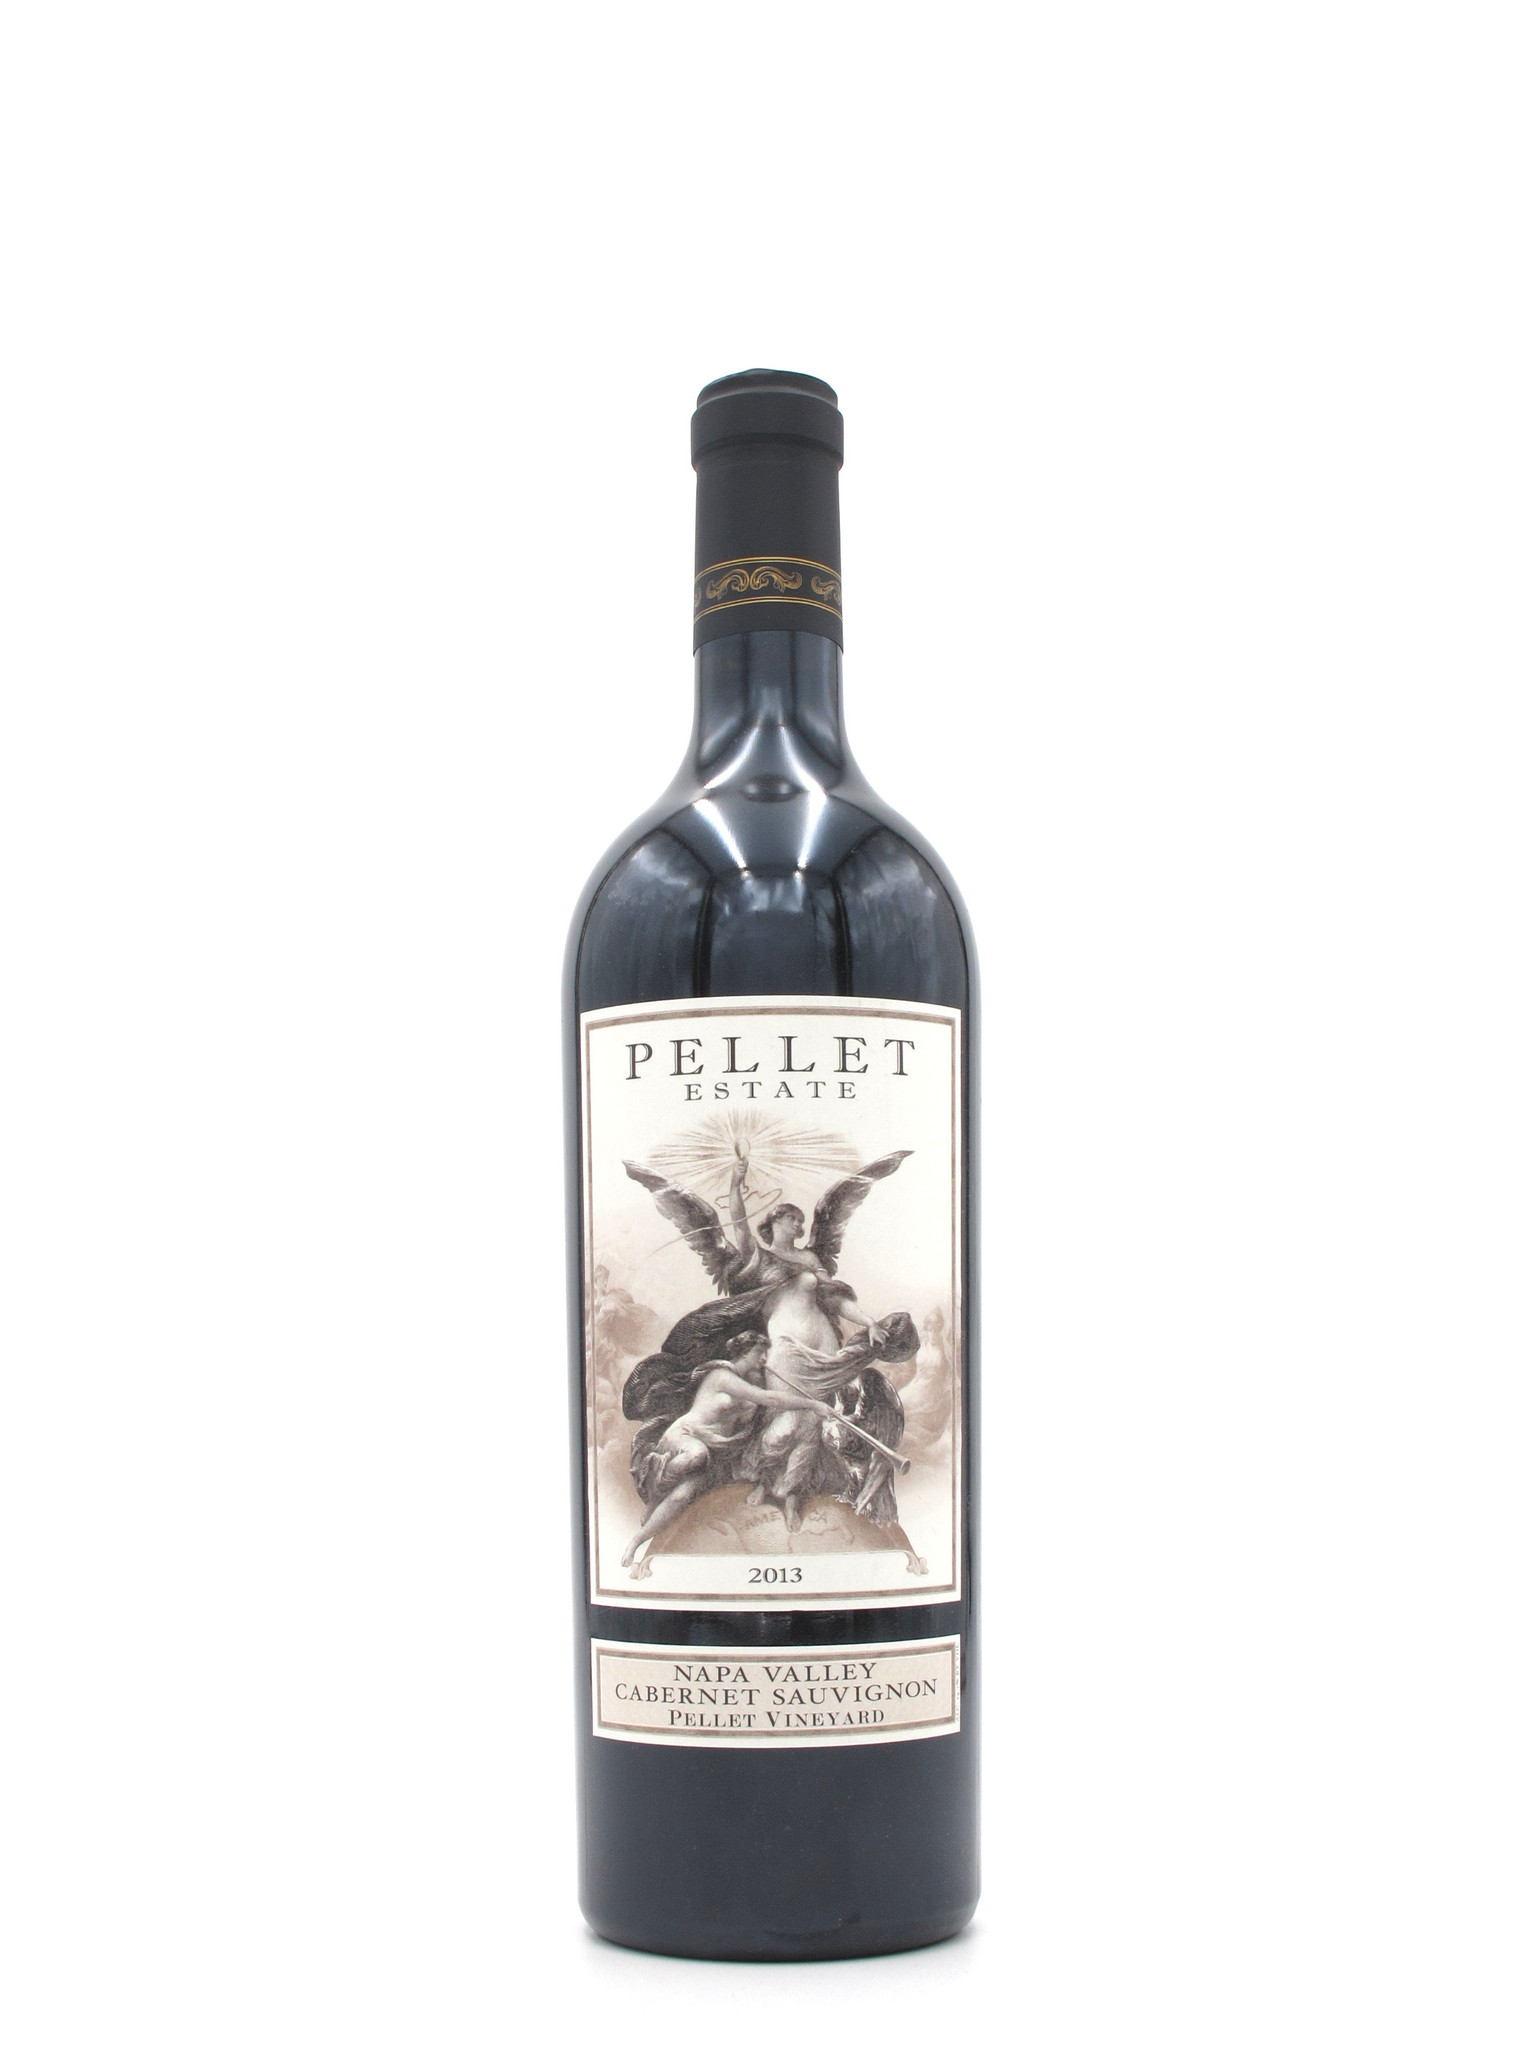 Pellet 2013 Pellet Estate Cabernet Sauvignon, Napa Valley 750ml